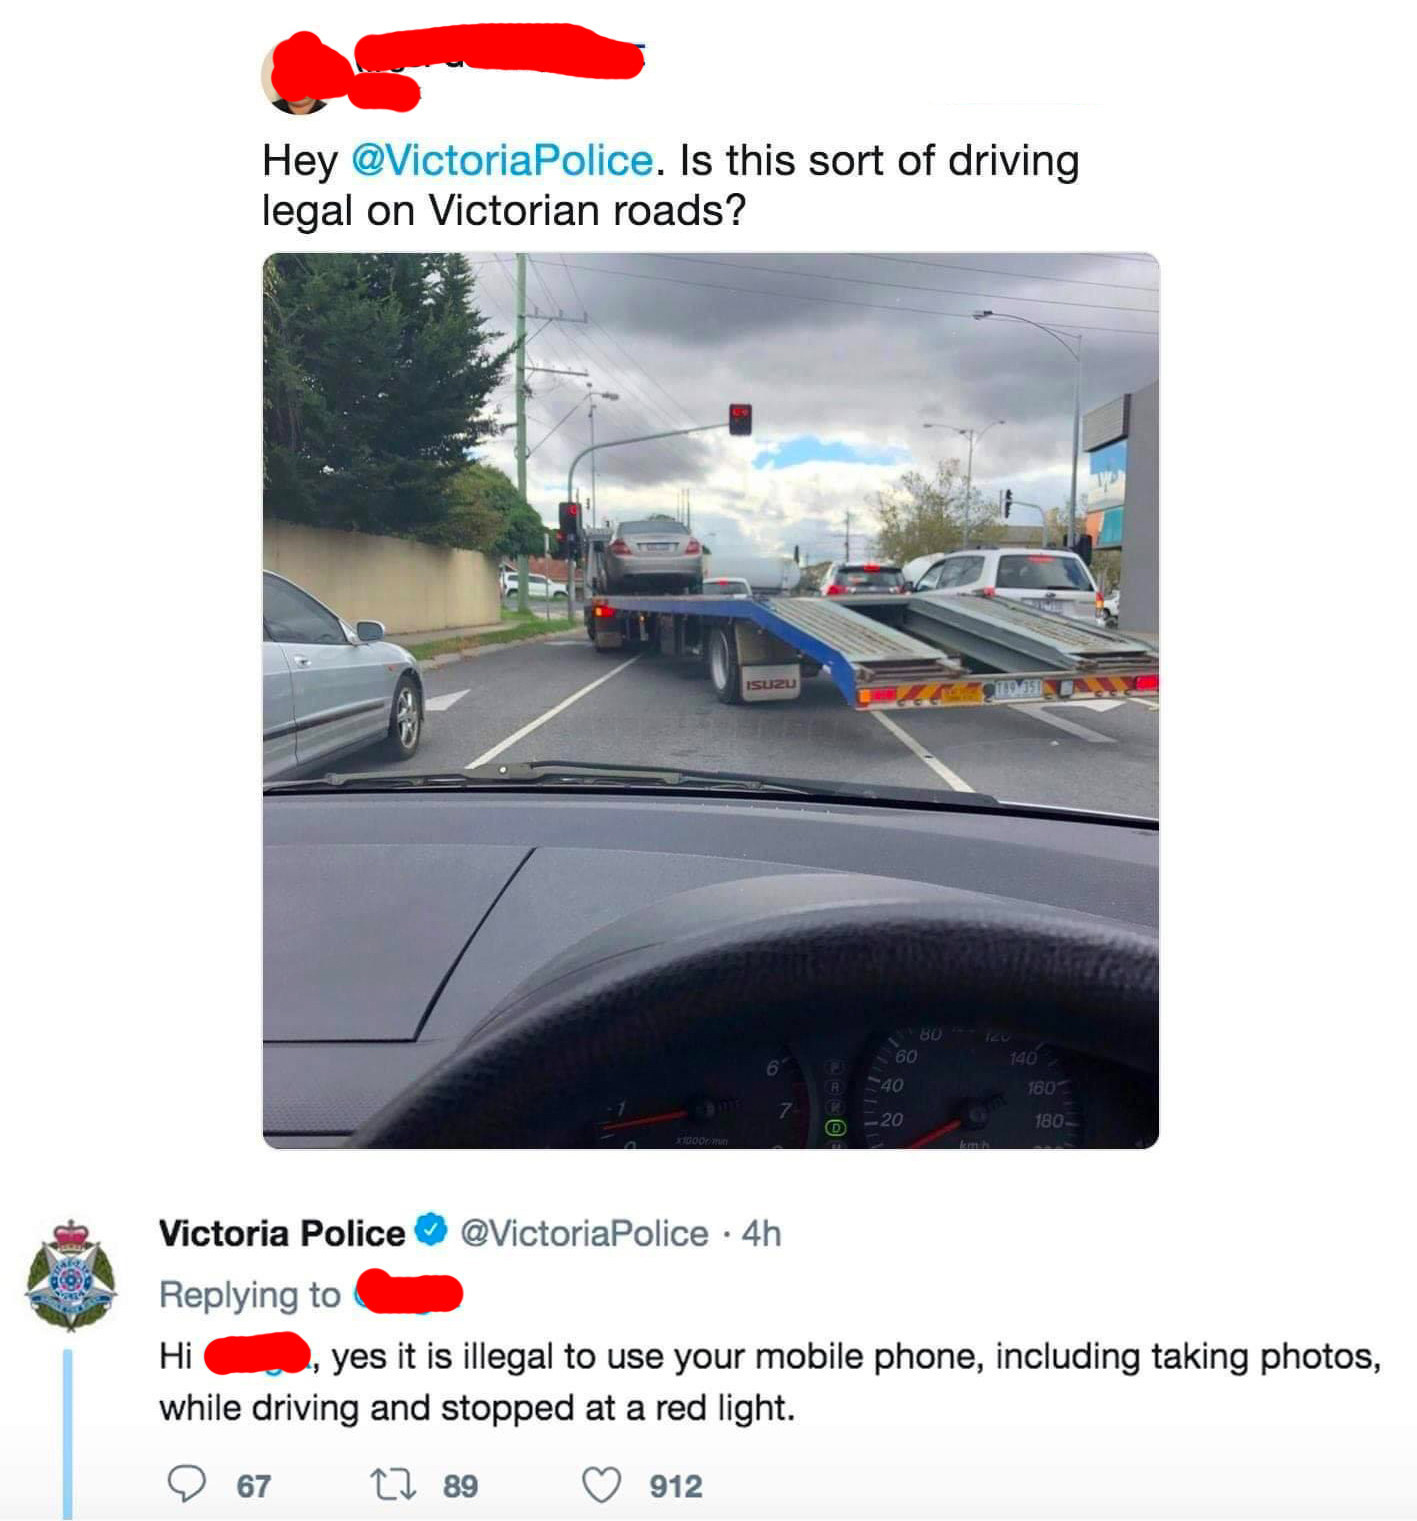 tweet of someone tweeting at the police about legal driving and they get called out on using their phone